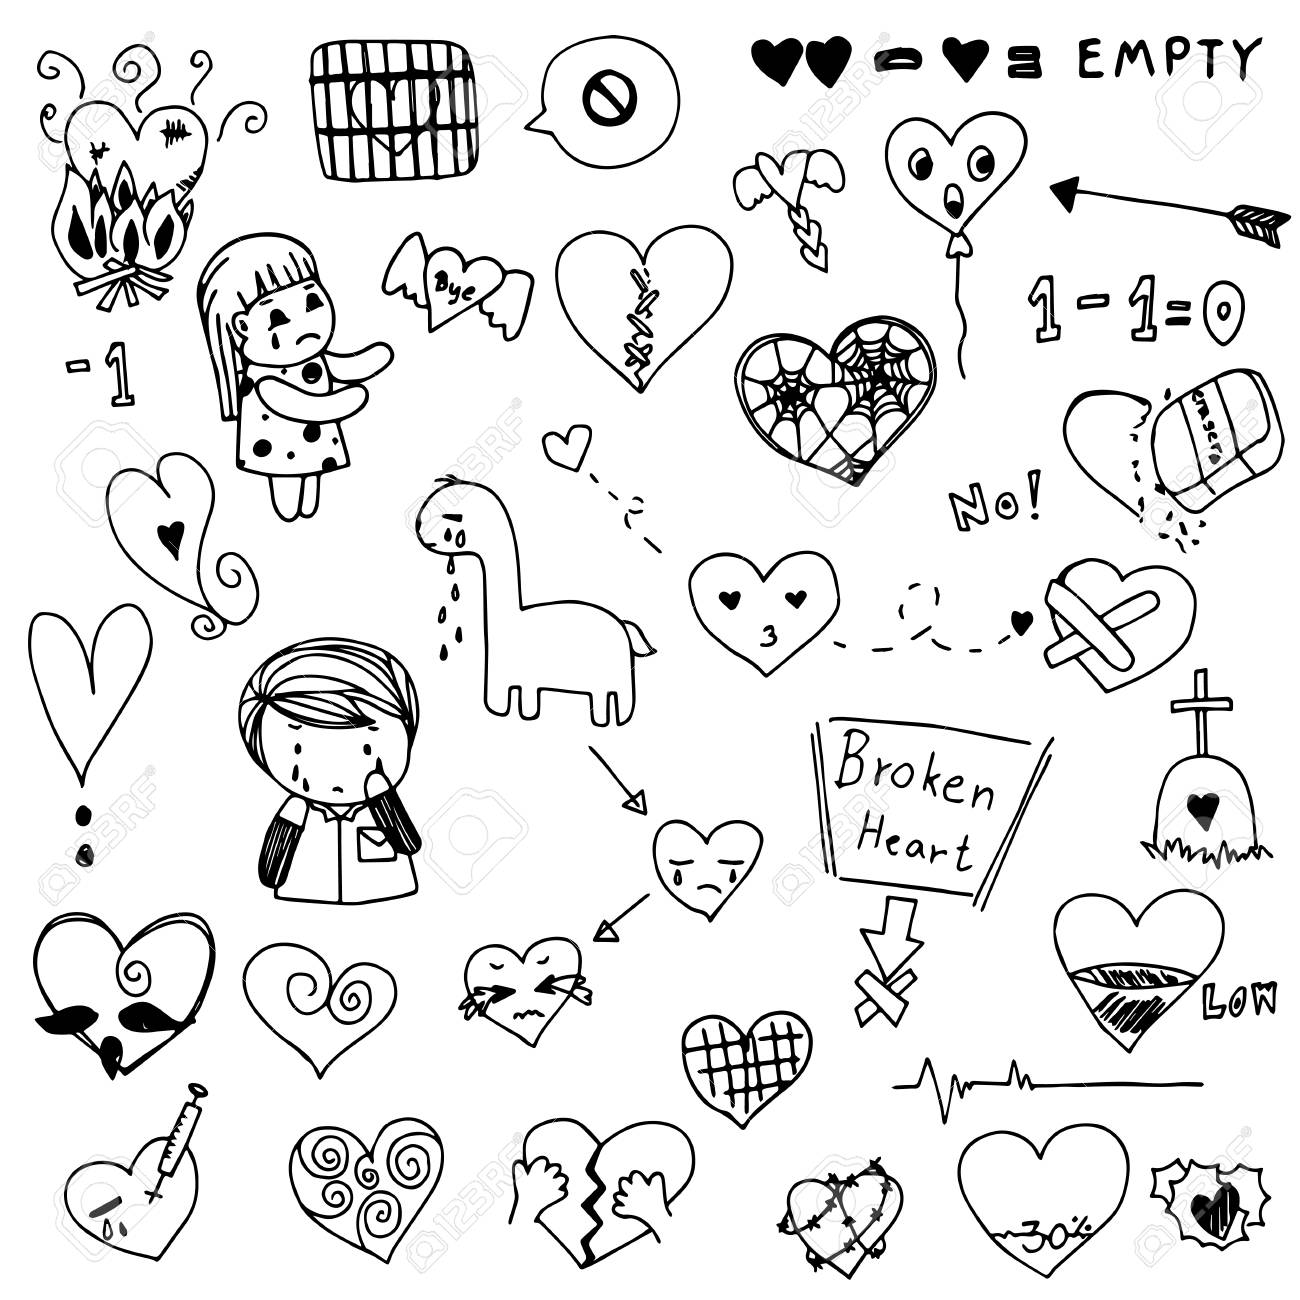 Broken Heart And Love Heart Doodle Vector Set Royalty Free Cliparts Vectors And Stock Illustration Image 89058048 Check out our heart doodle selection for the very best in unique or custom, handmade pieces from our digital shops. broken heart and love heart doodle vector set